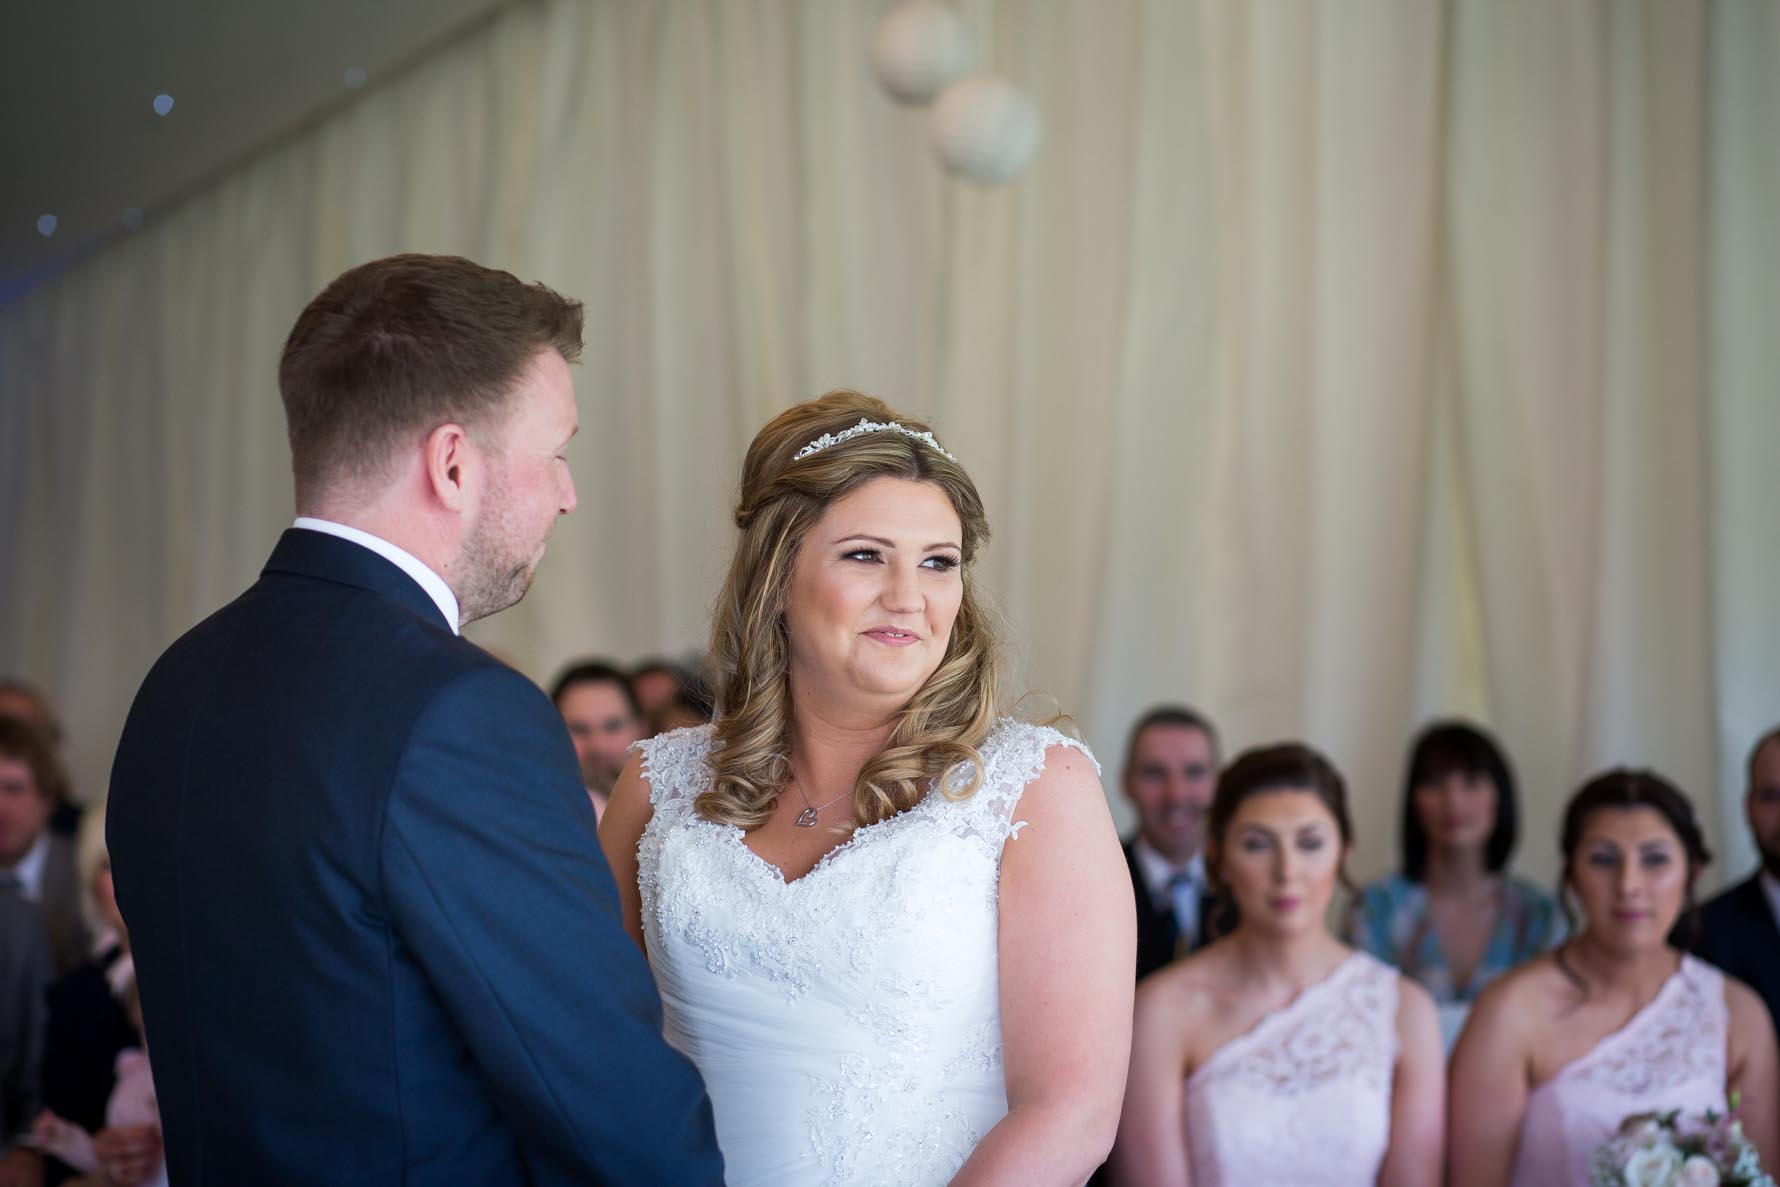 Wedding Photography at The Old School House Lichfield